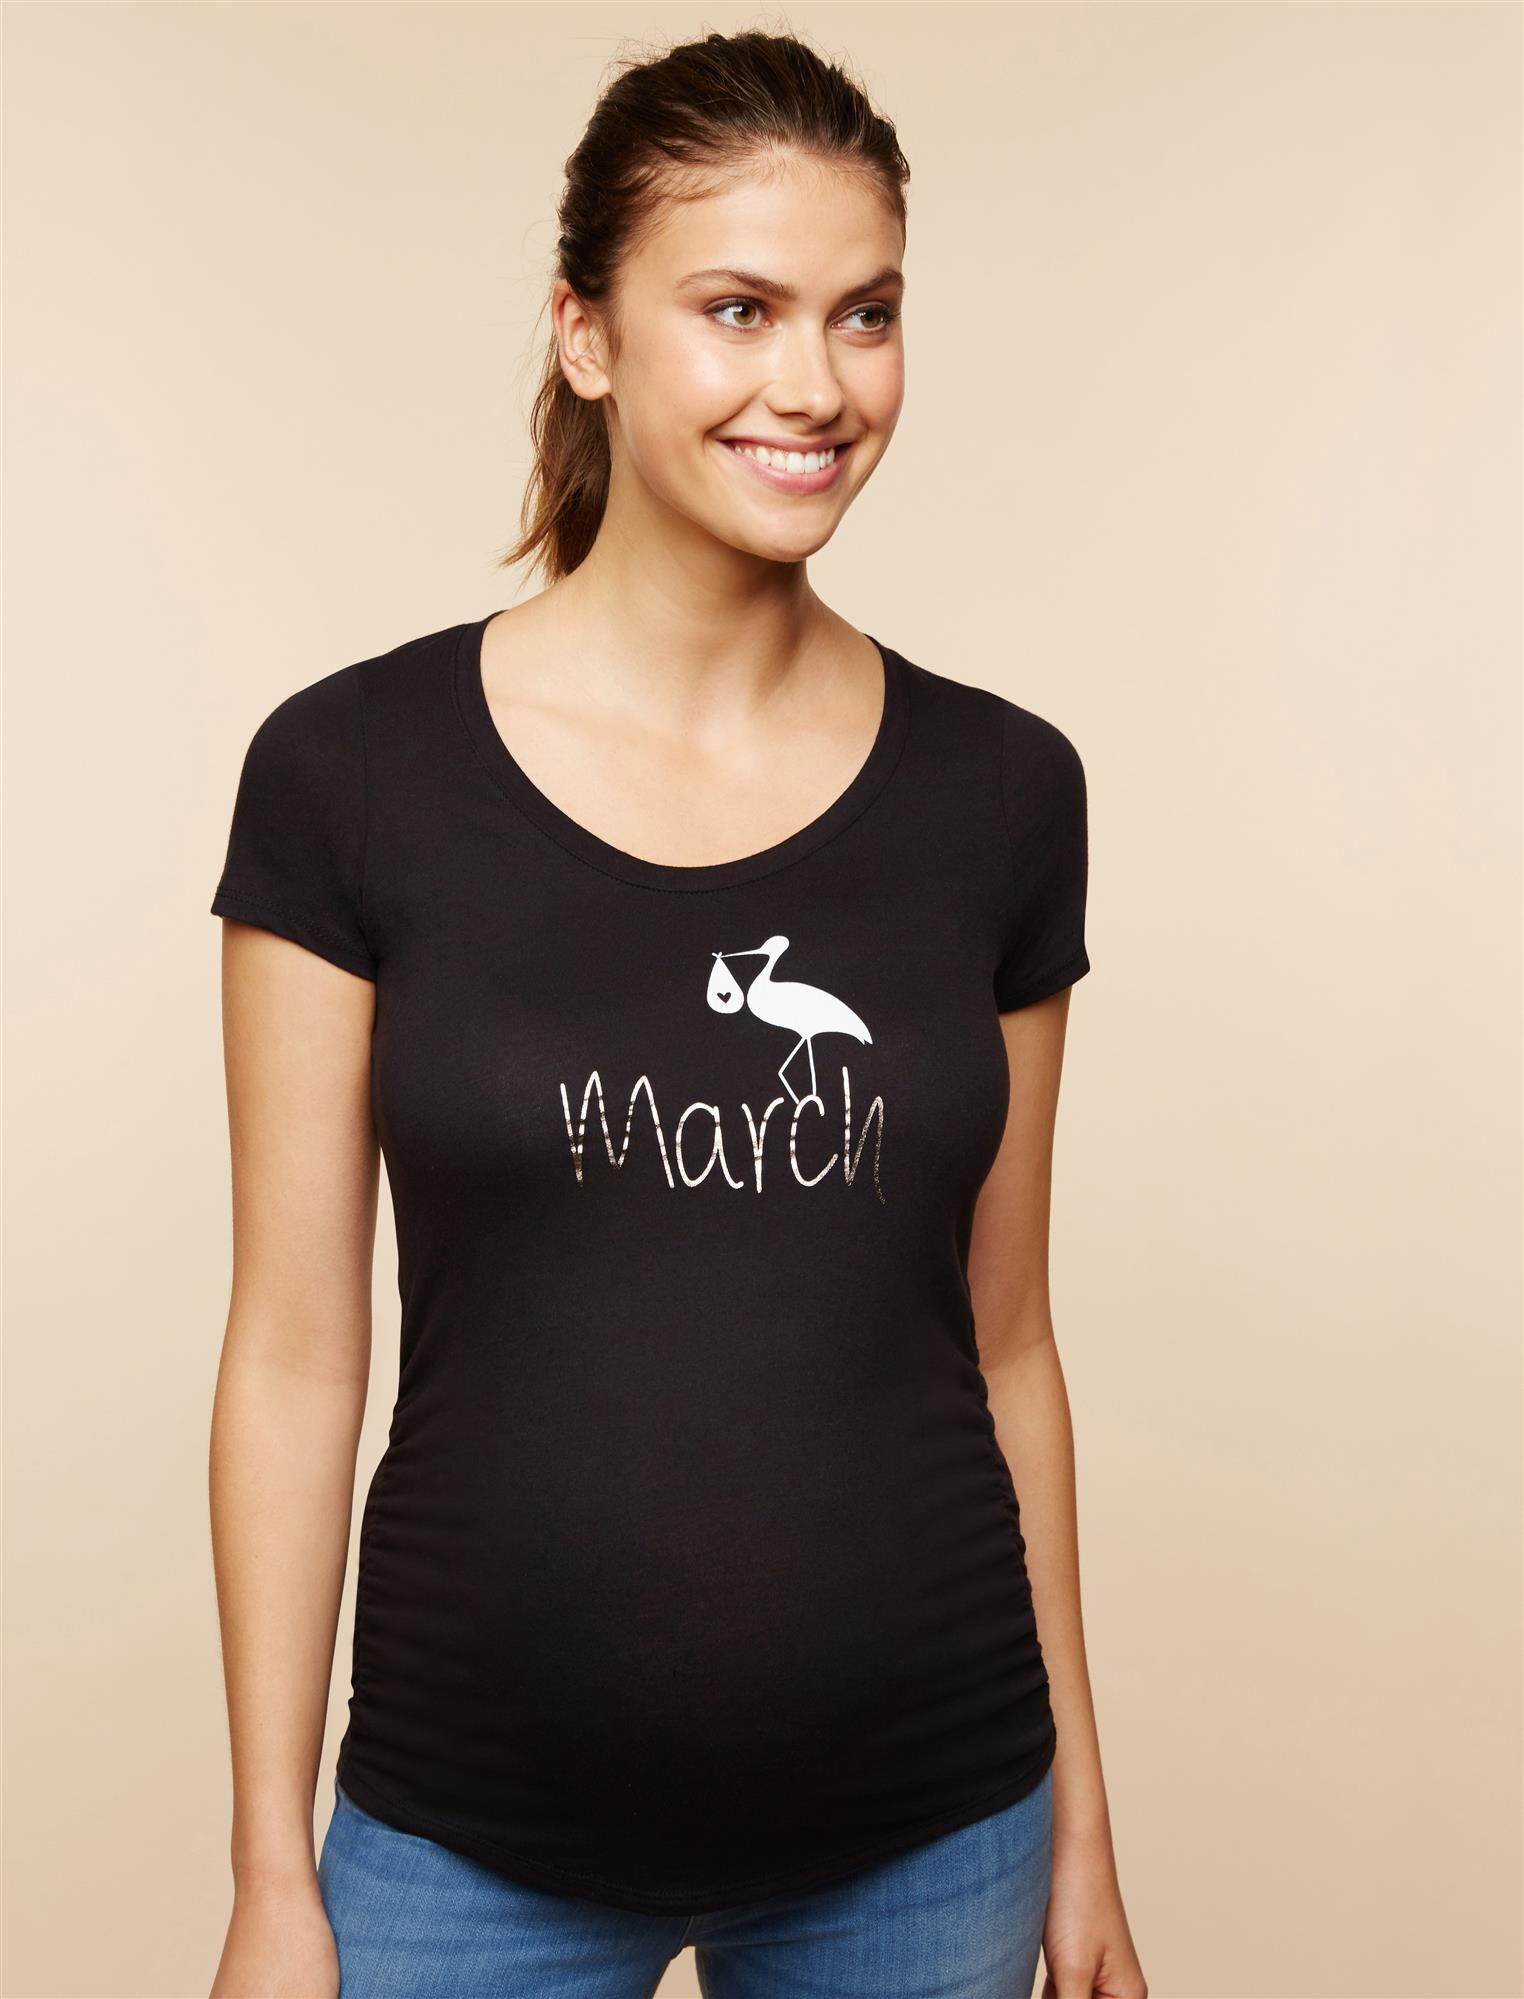 Stork March Maternity Tee